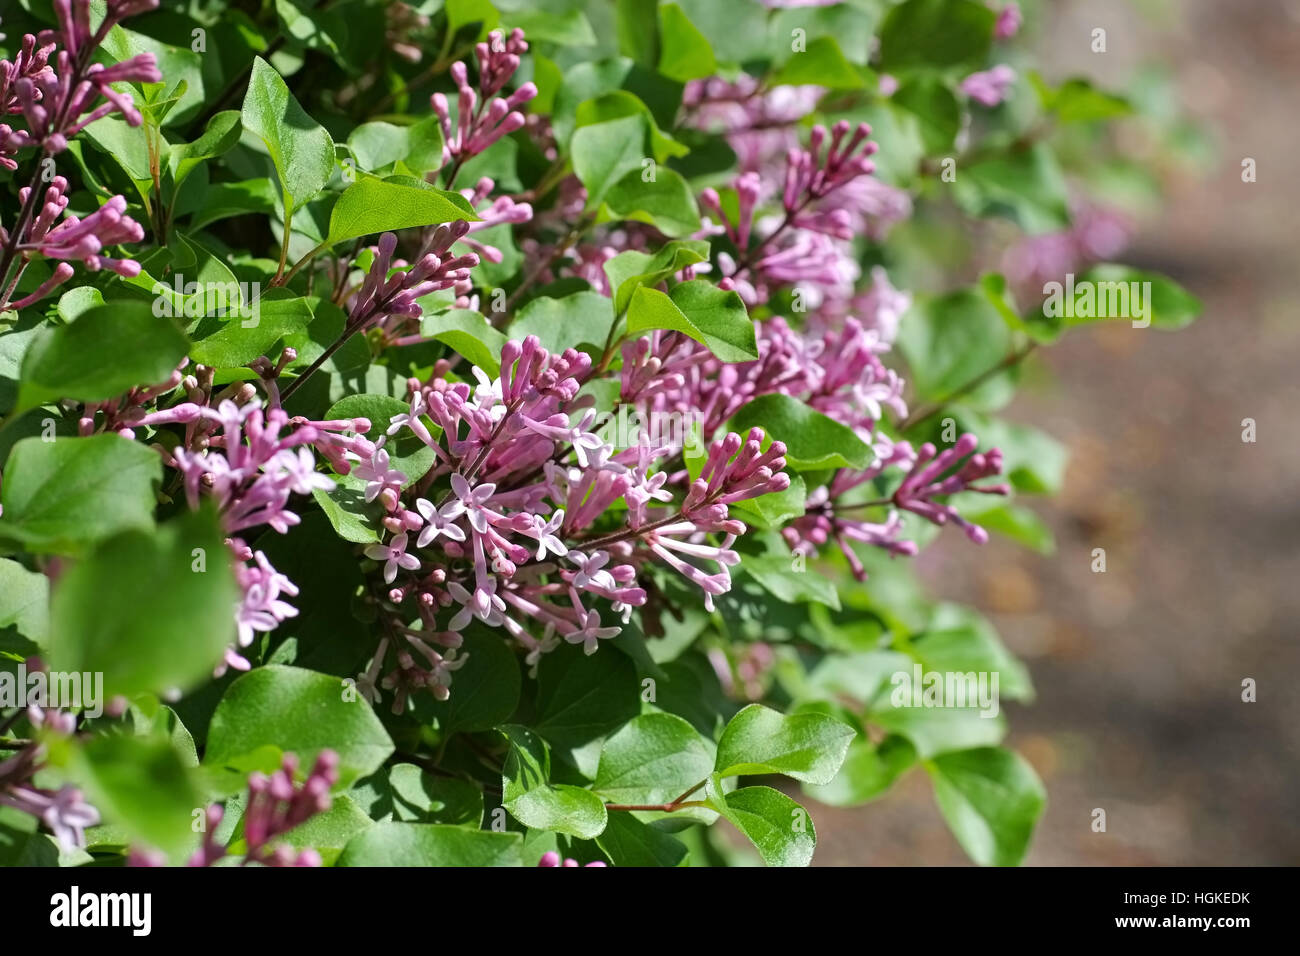 Flieder - small purple lilac flower in garden - Stock Image